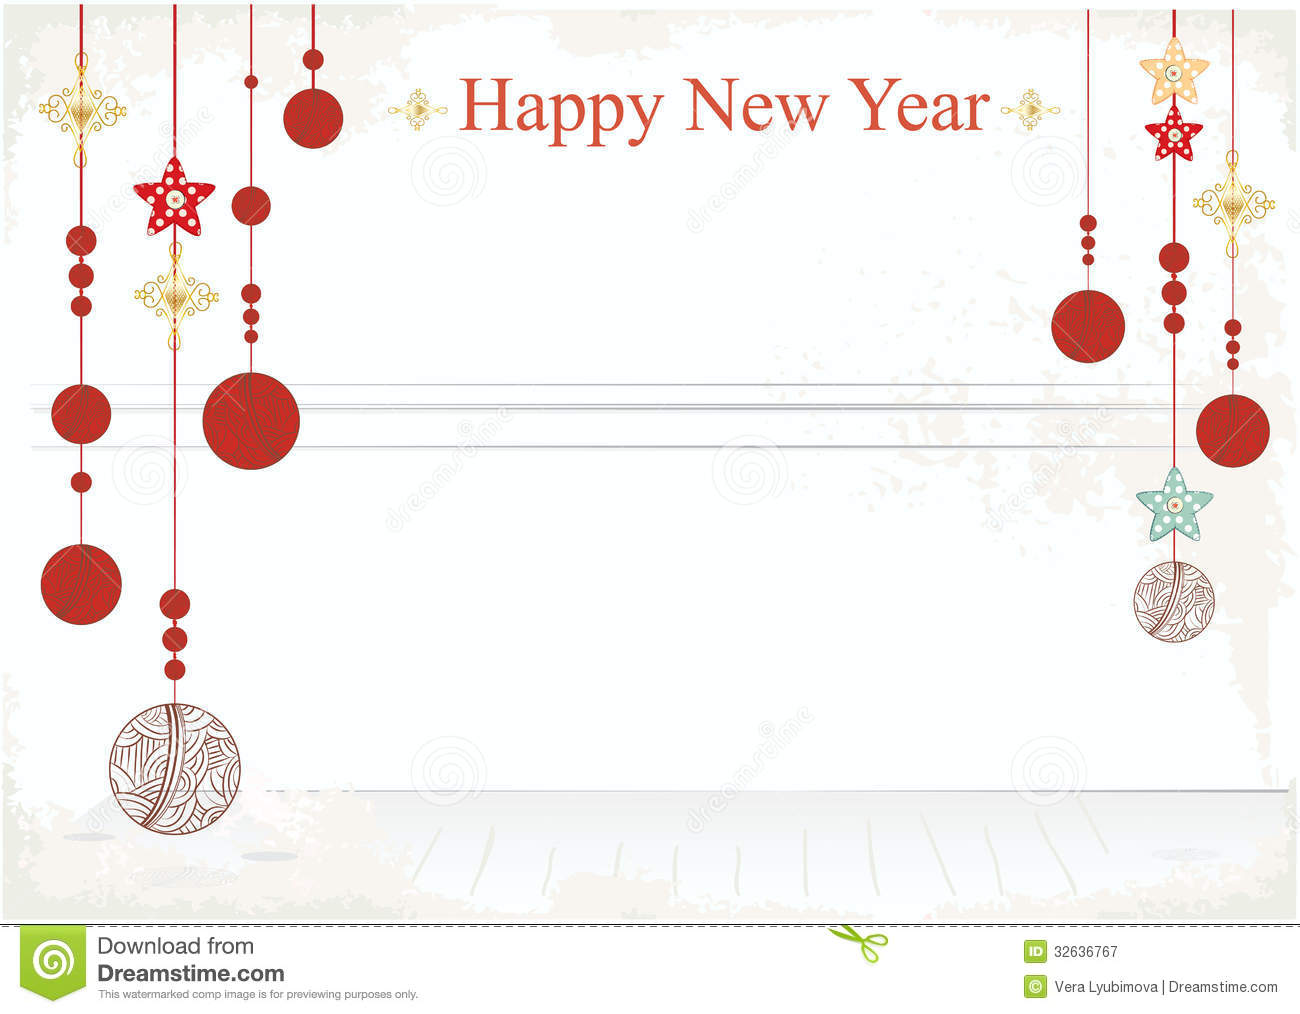 New Year Decorations On A Card Design Royalty Free Stock ...